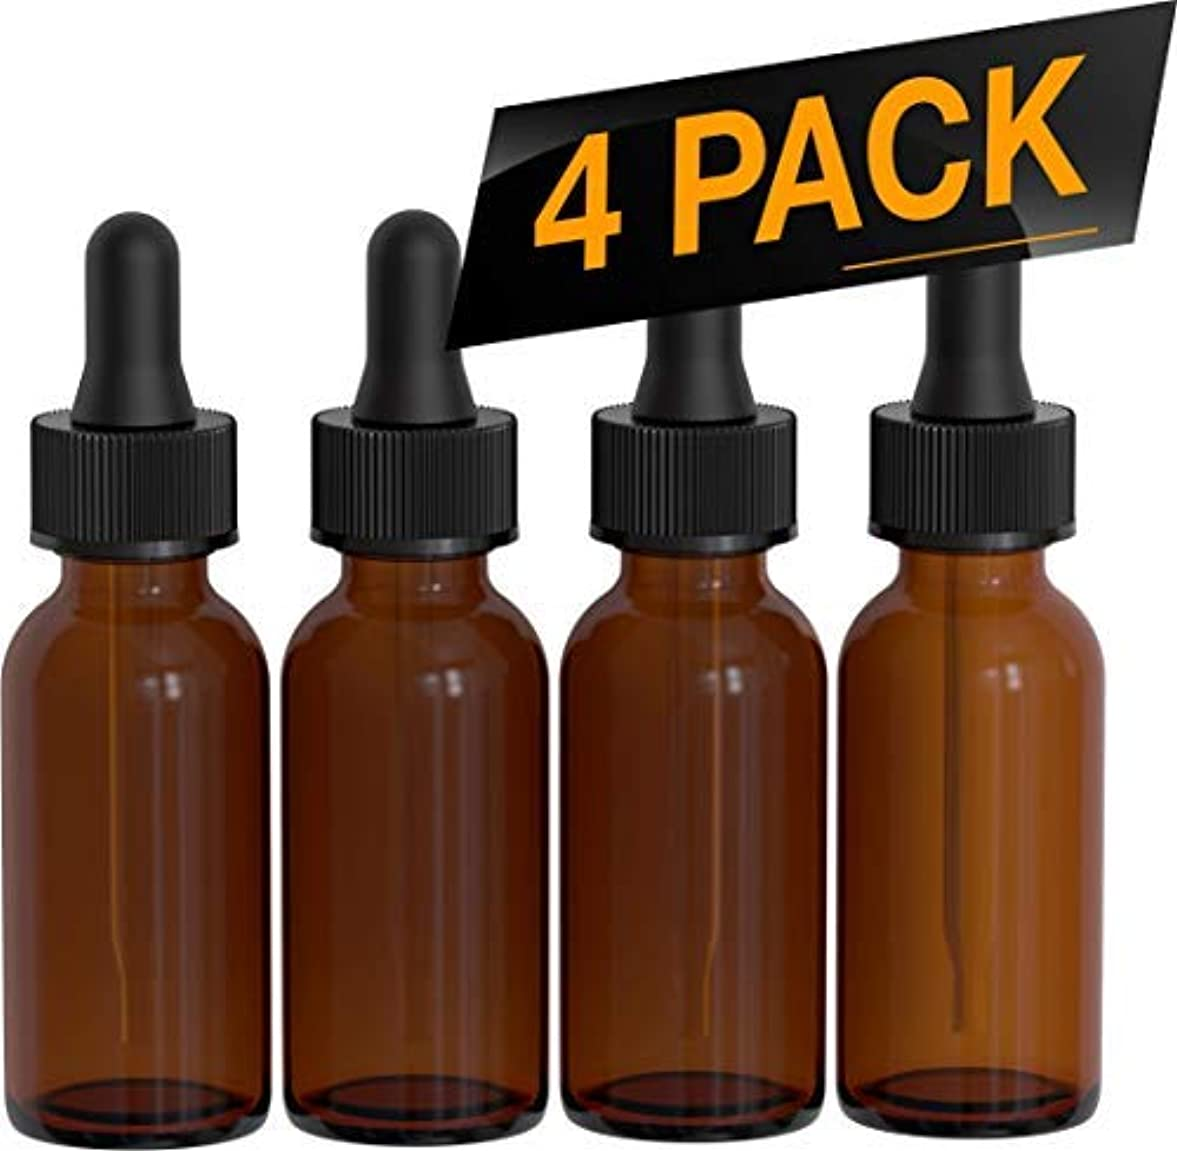 対角線下向き温かい4 Pack Essential Oil Roller Bottles - Round Boston Empty Refillable Amber Bottle with Glass Dropper for Liquid...